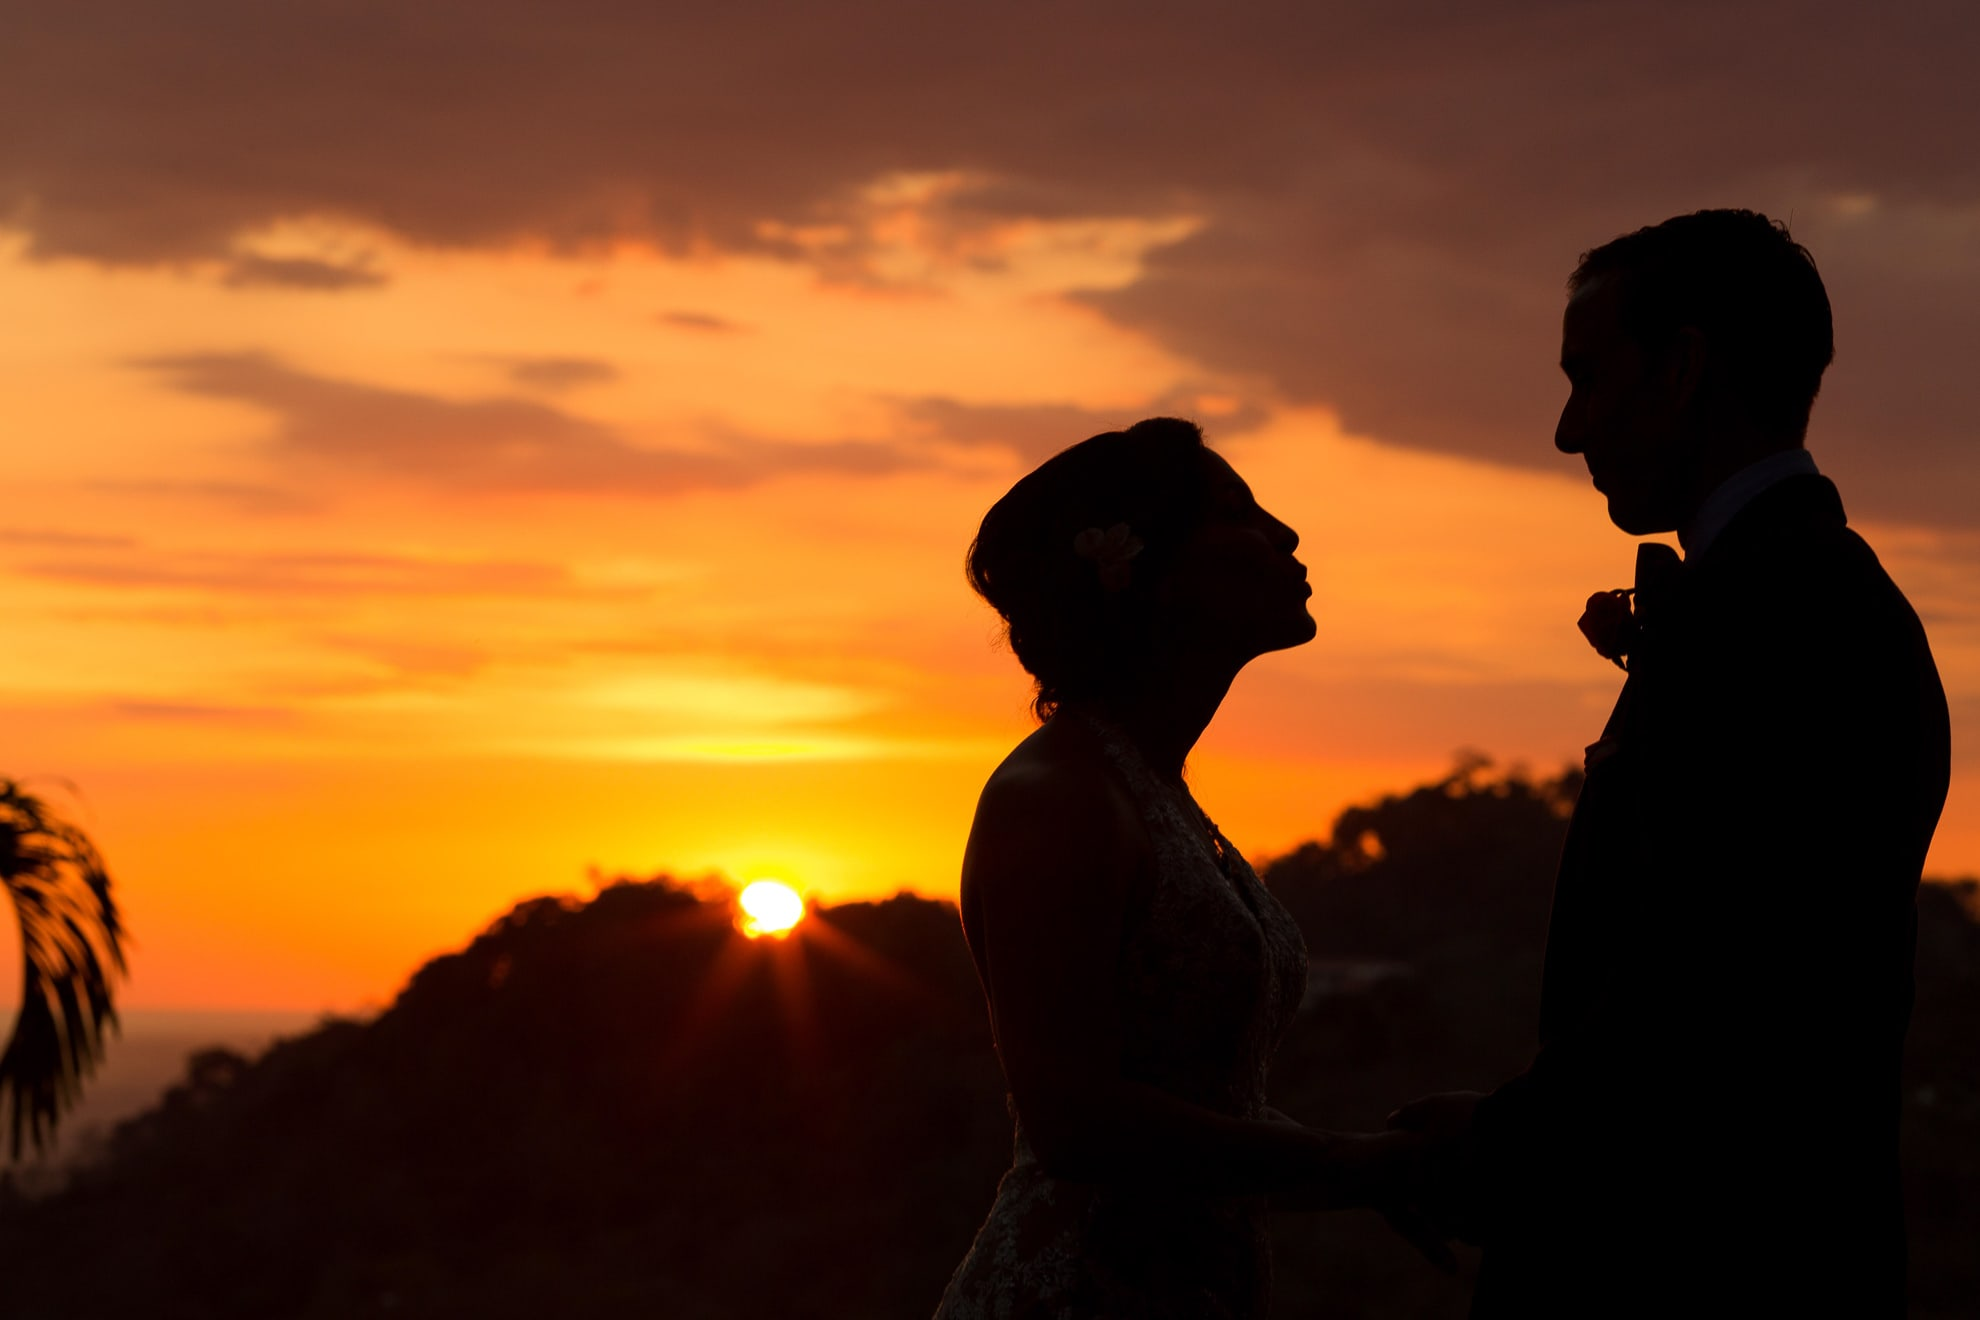 Silhouette photo at wedding